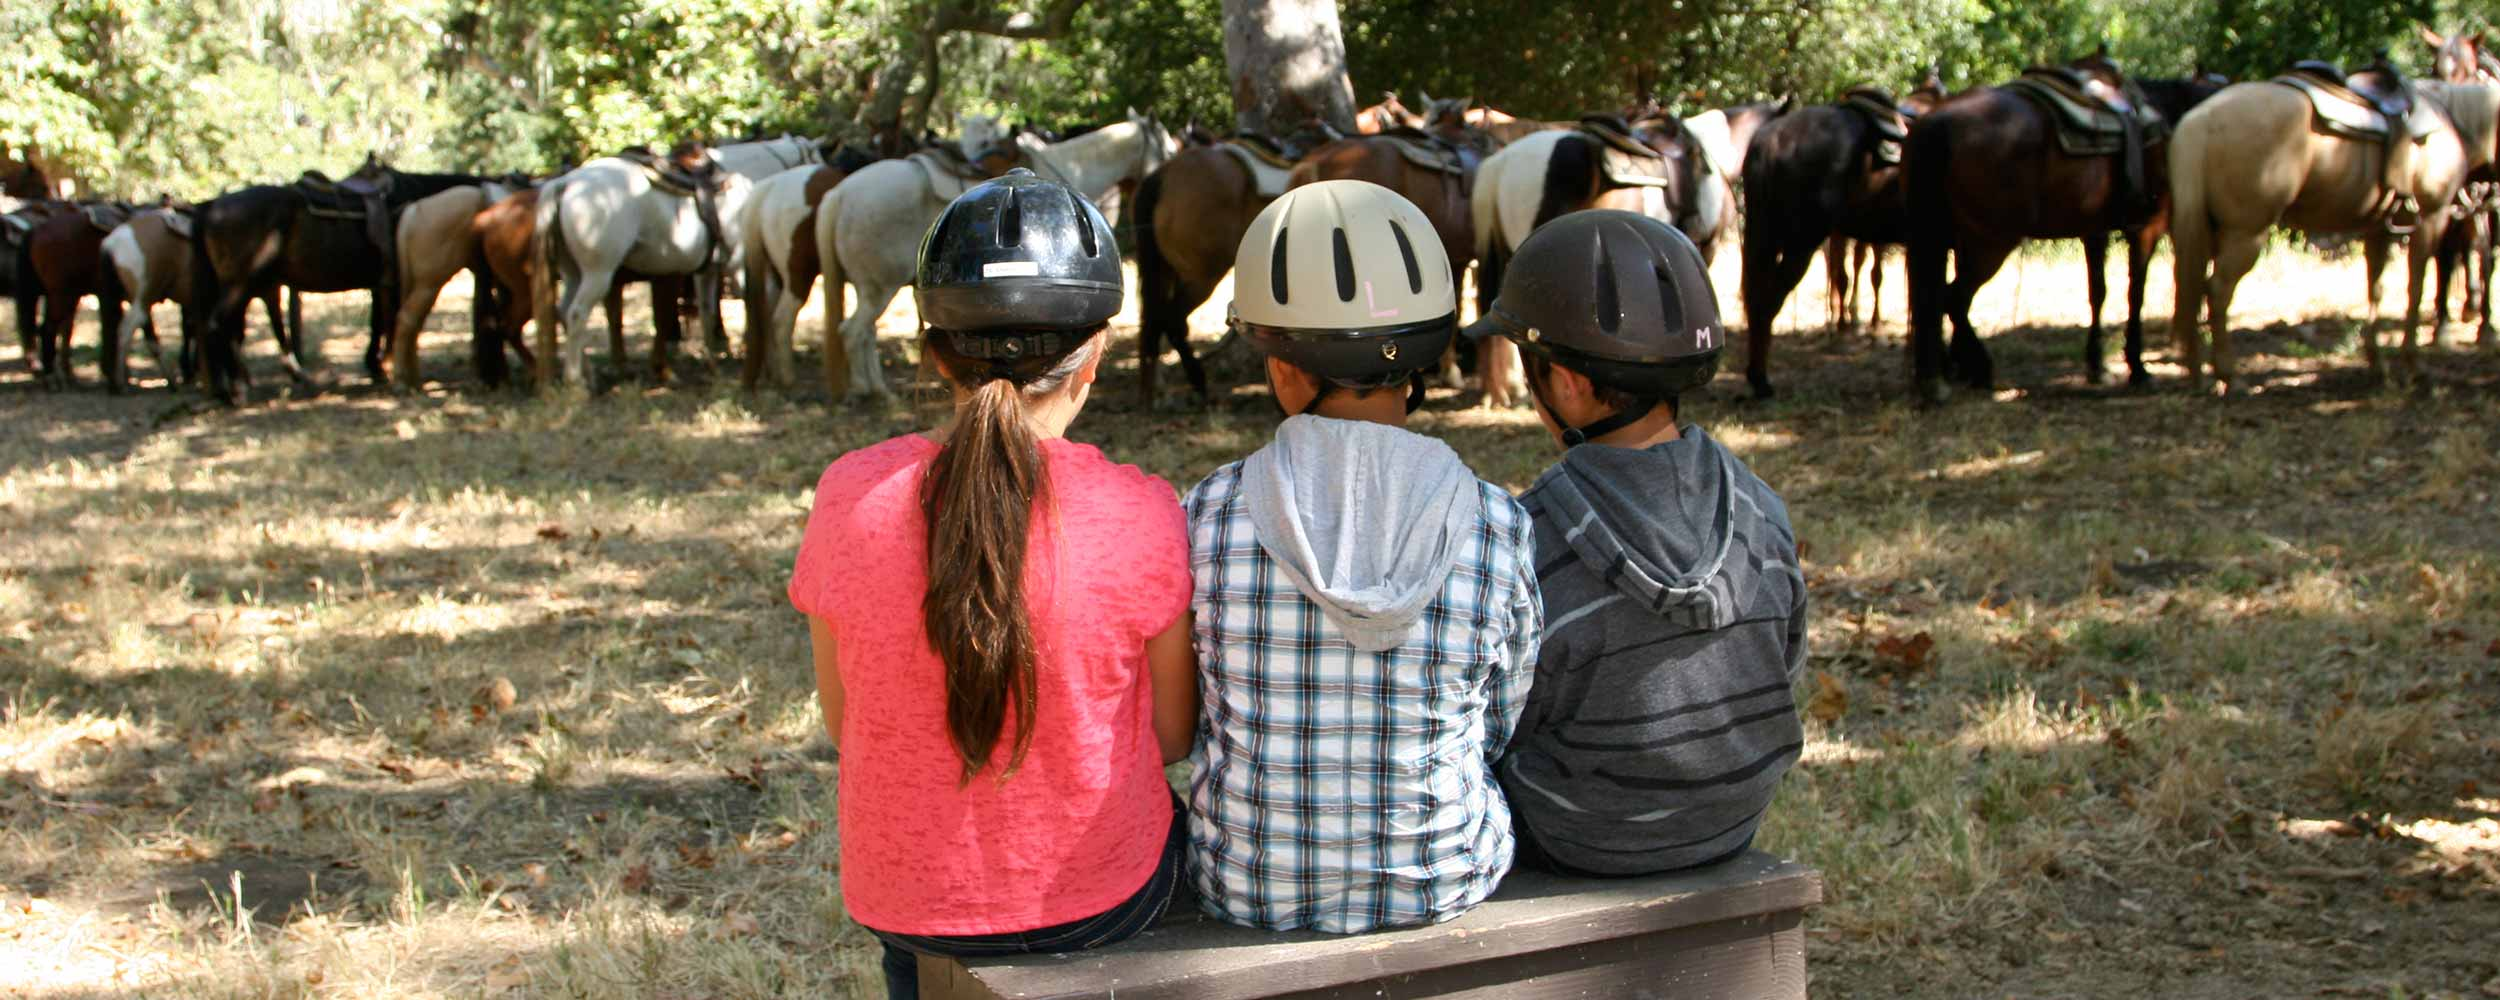 kids horseback riding - Alisal Resort in Solvang California